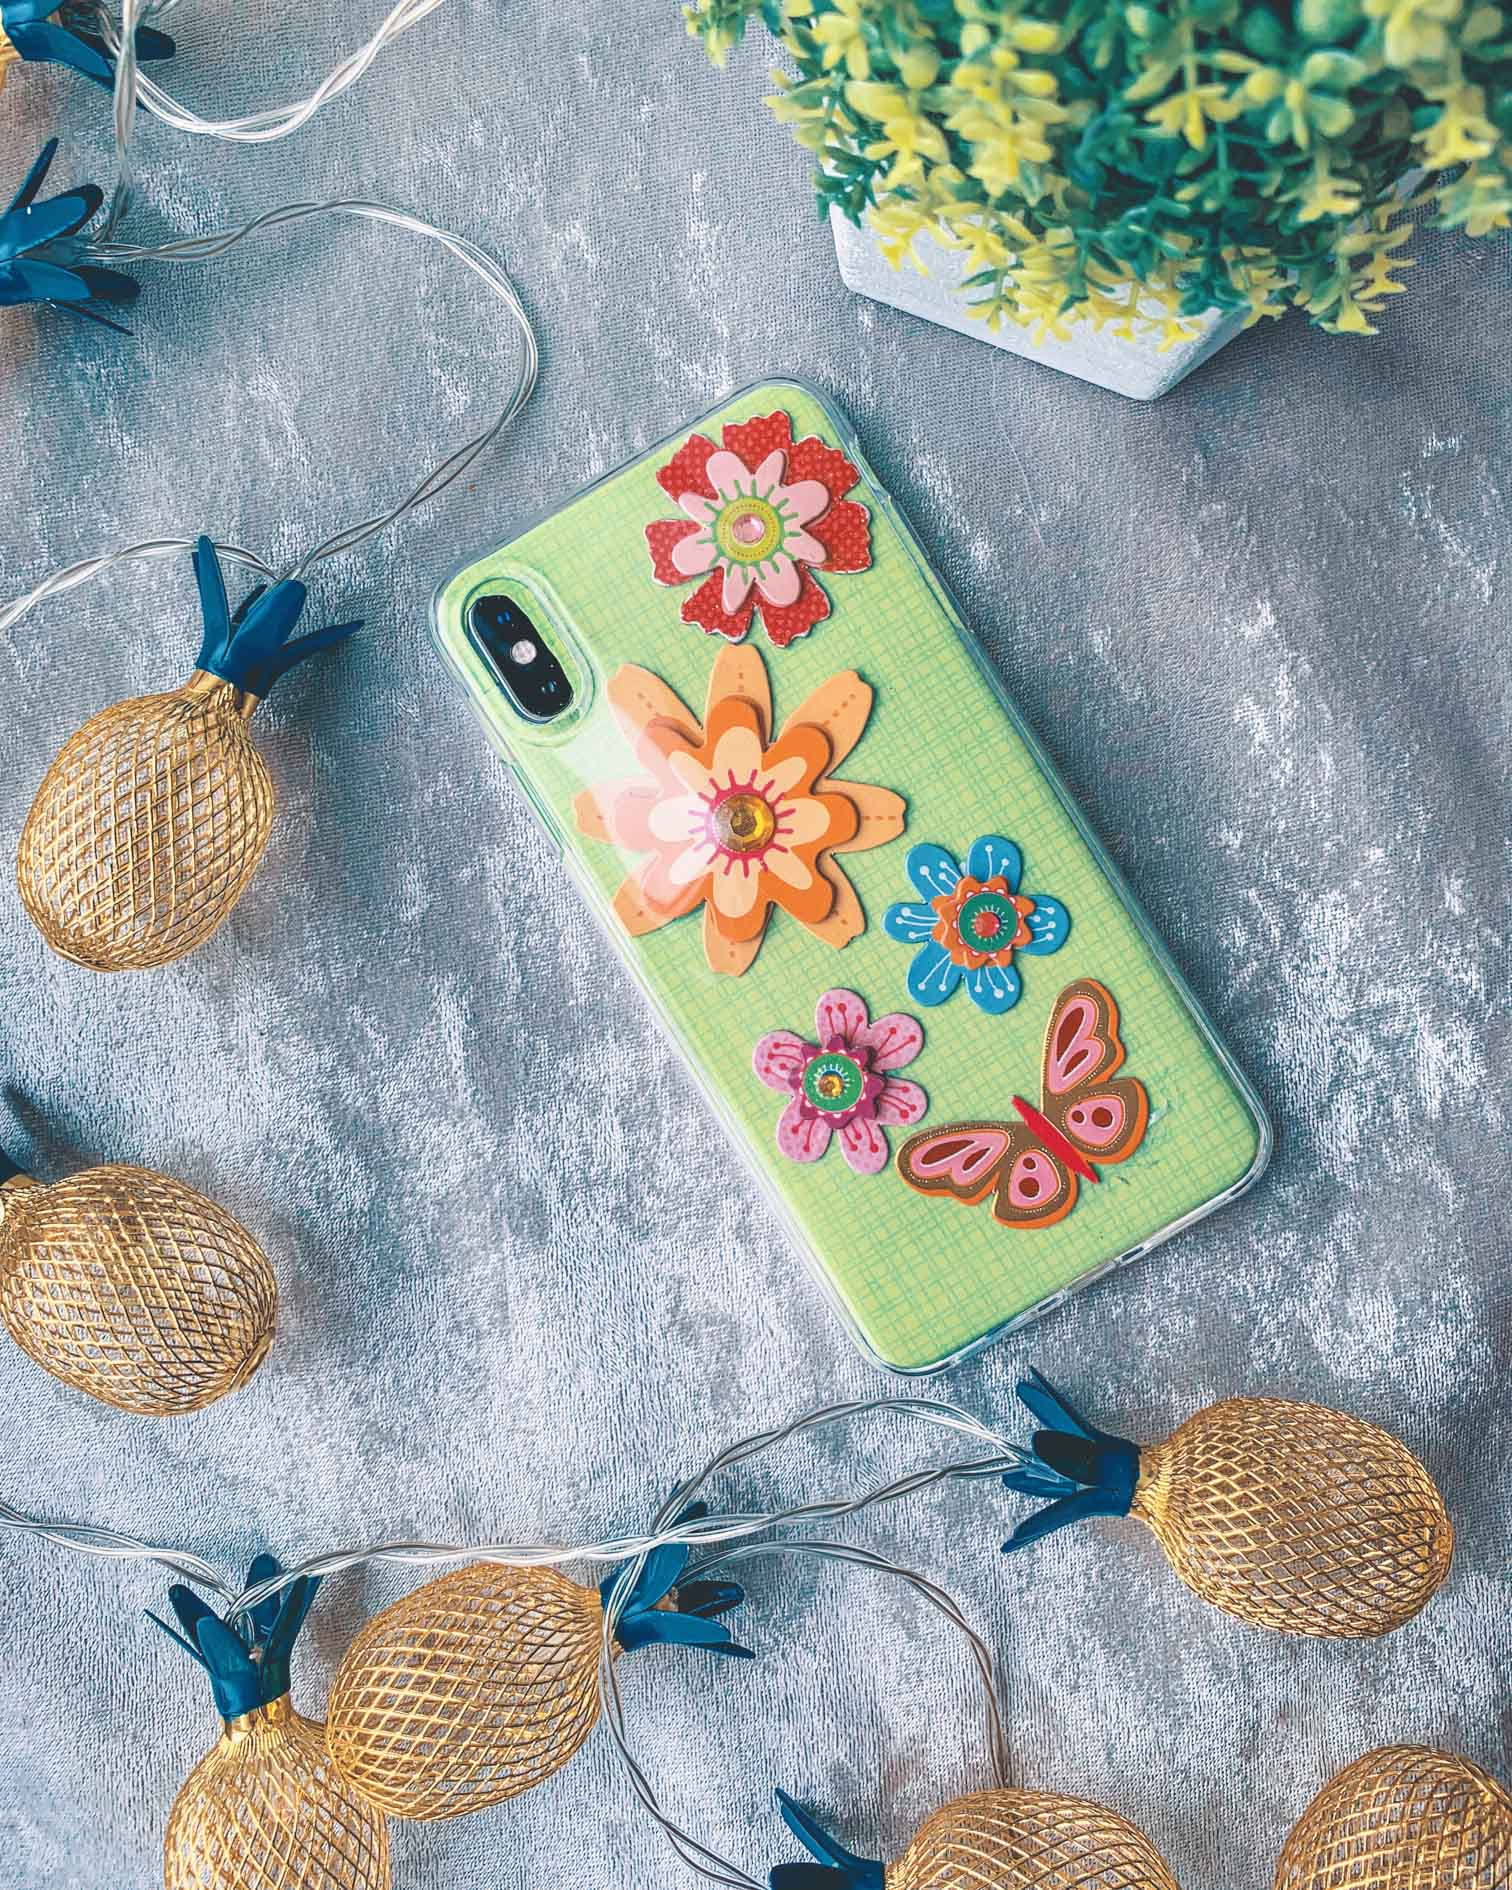 Personalized Cell Phones: How to Make It at Home